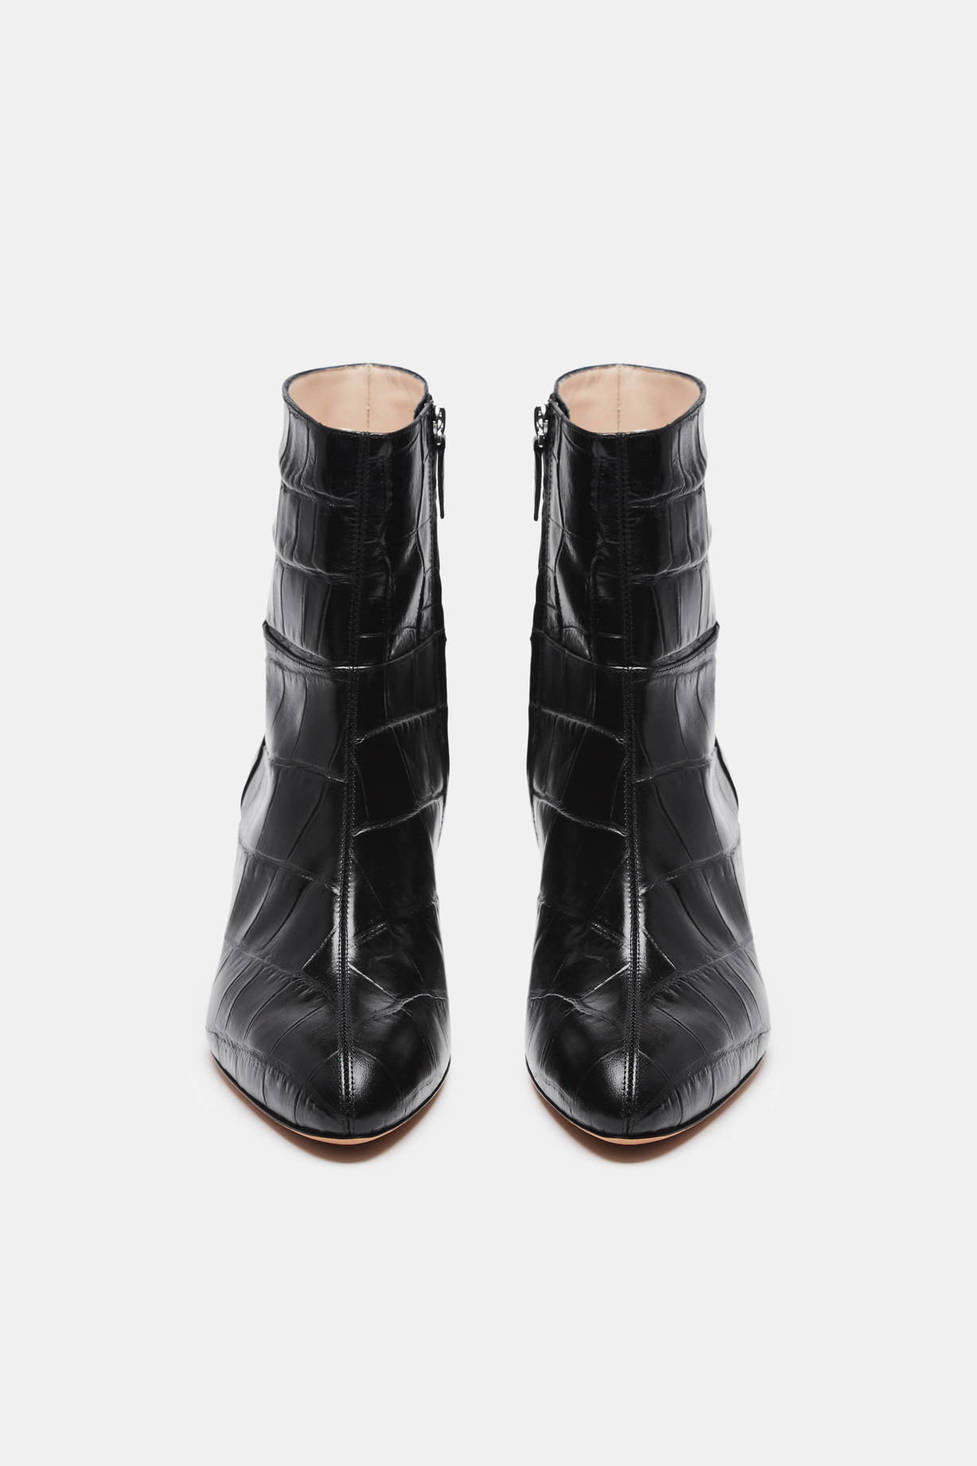 Altuzarra Callie Ankle Boot $660